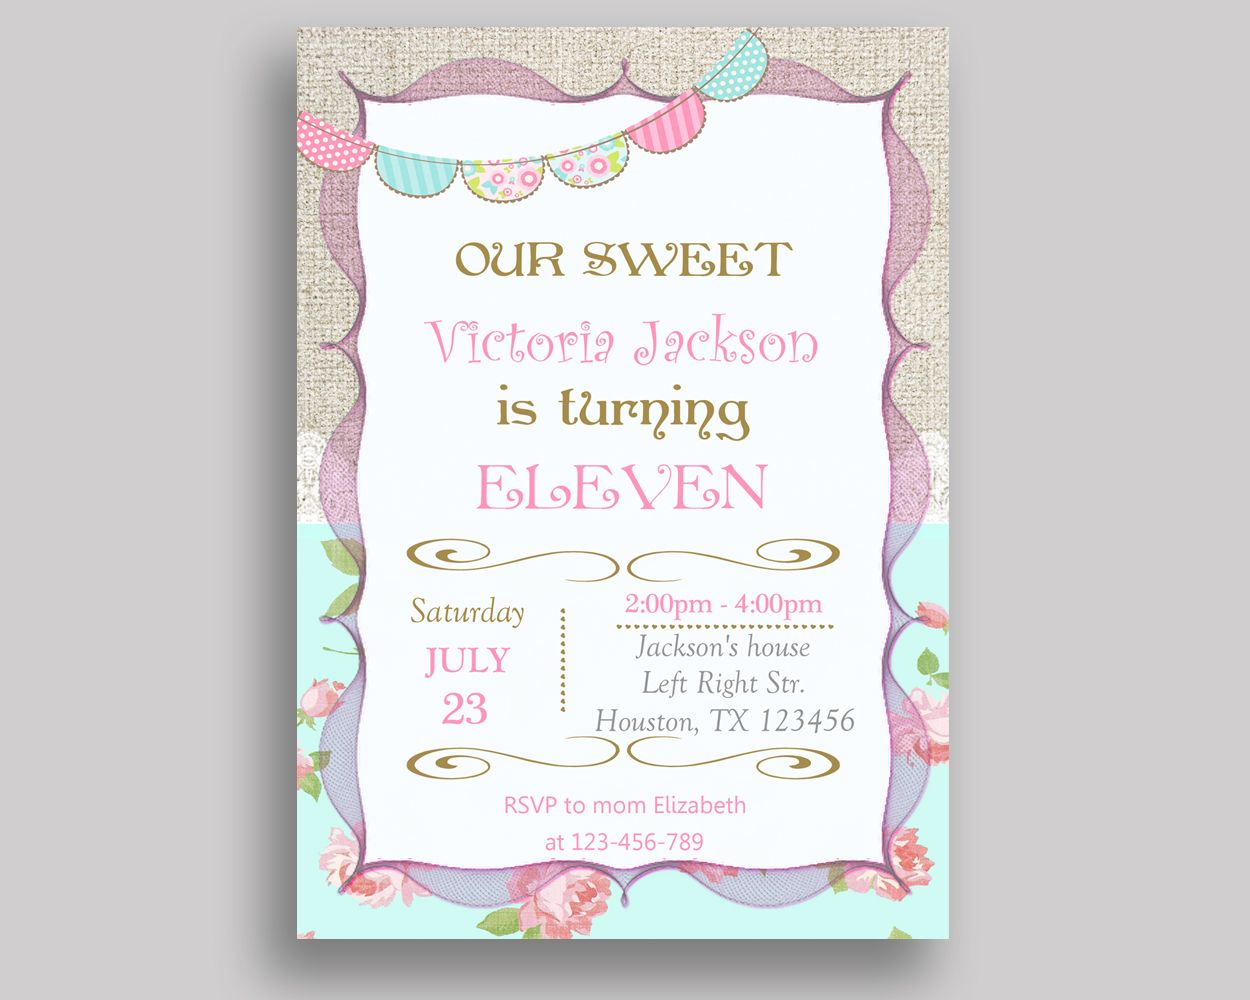 Shabby chic birthday invitation shabby chic birthday party shabbychic birthday invitation shabbychic birthday party invitation shabbychic birthday party shabbychic invitation girl burlap nue9s birthdayinvites filmwisefo